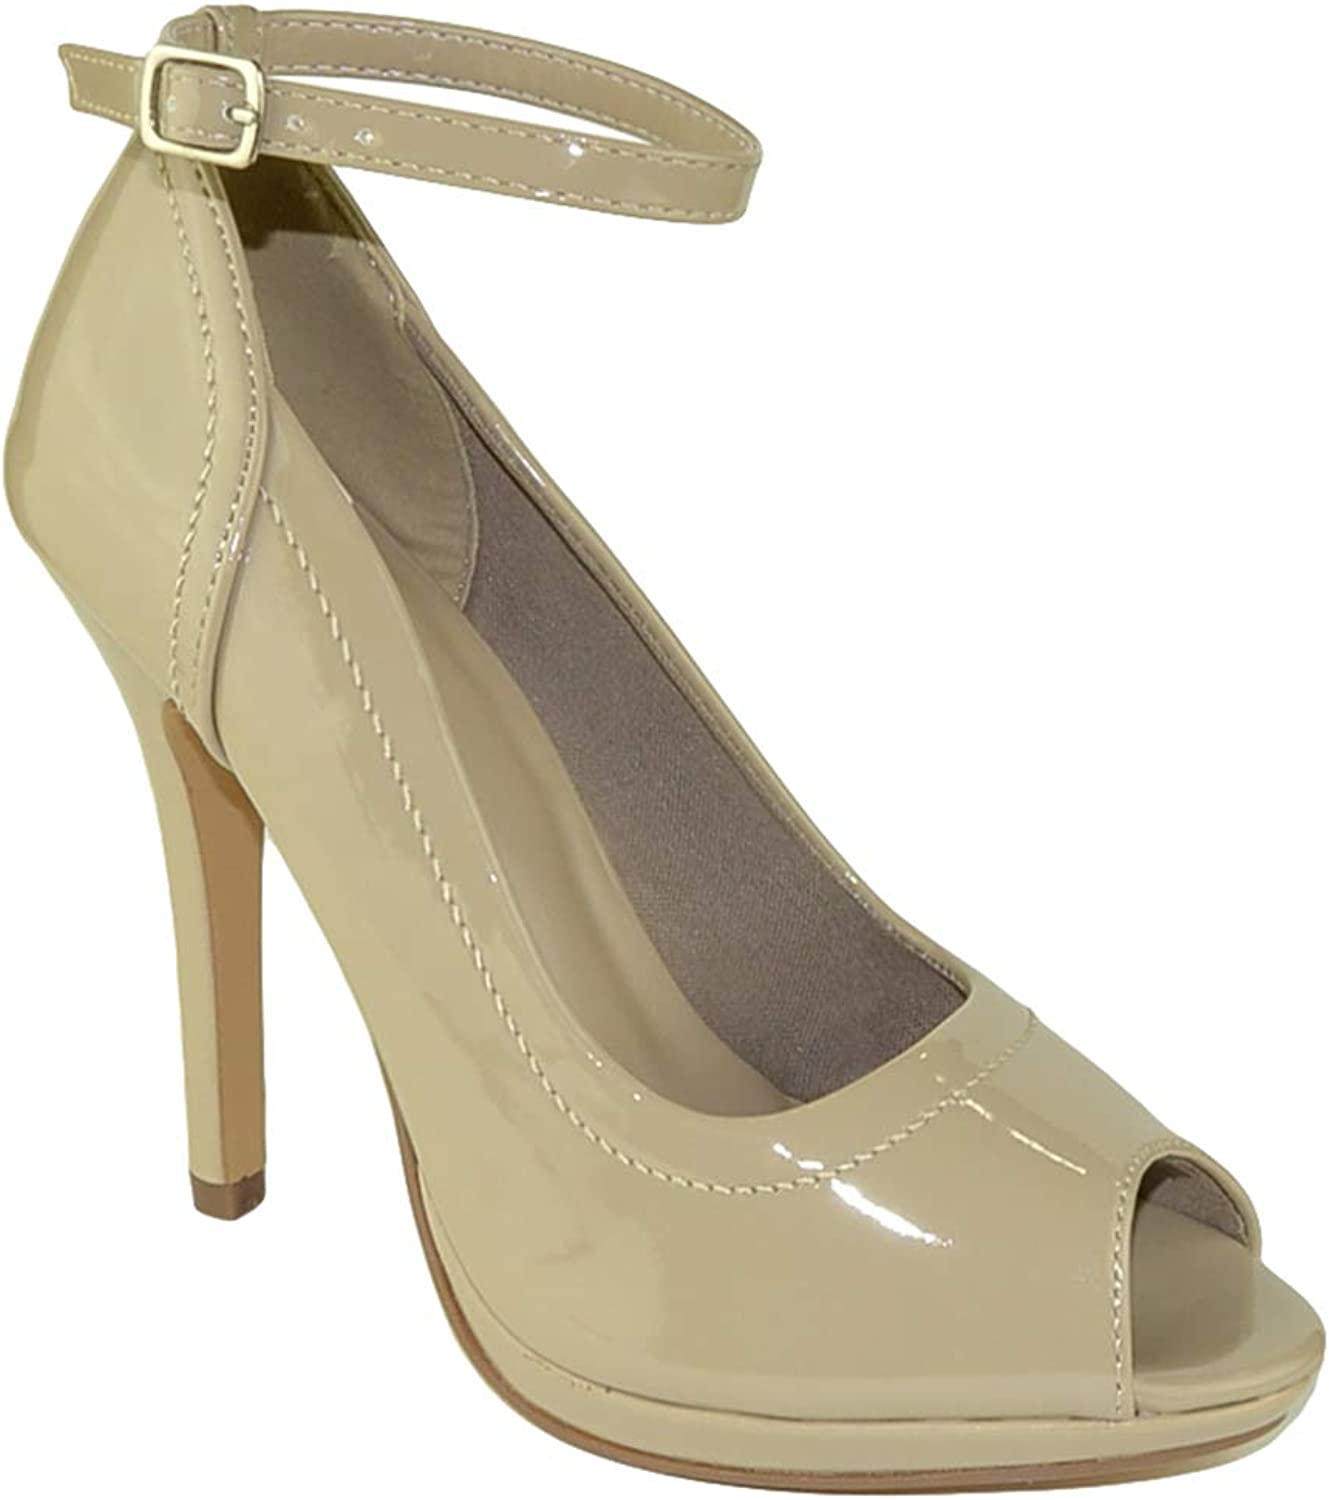 FL By KSC Womens Dress shoes Stiletto Tonal Stitch Peep Toe Pumps Taupe